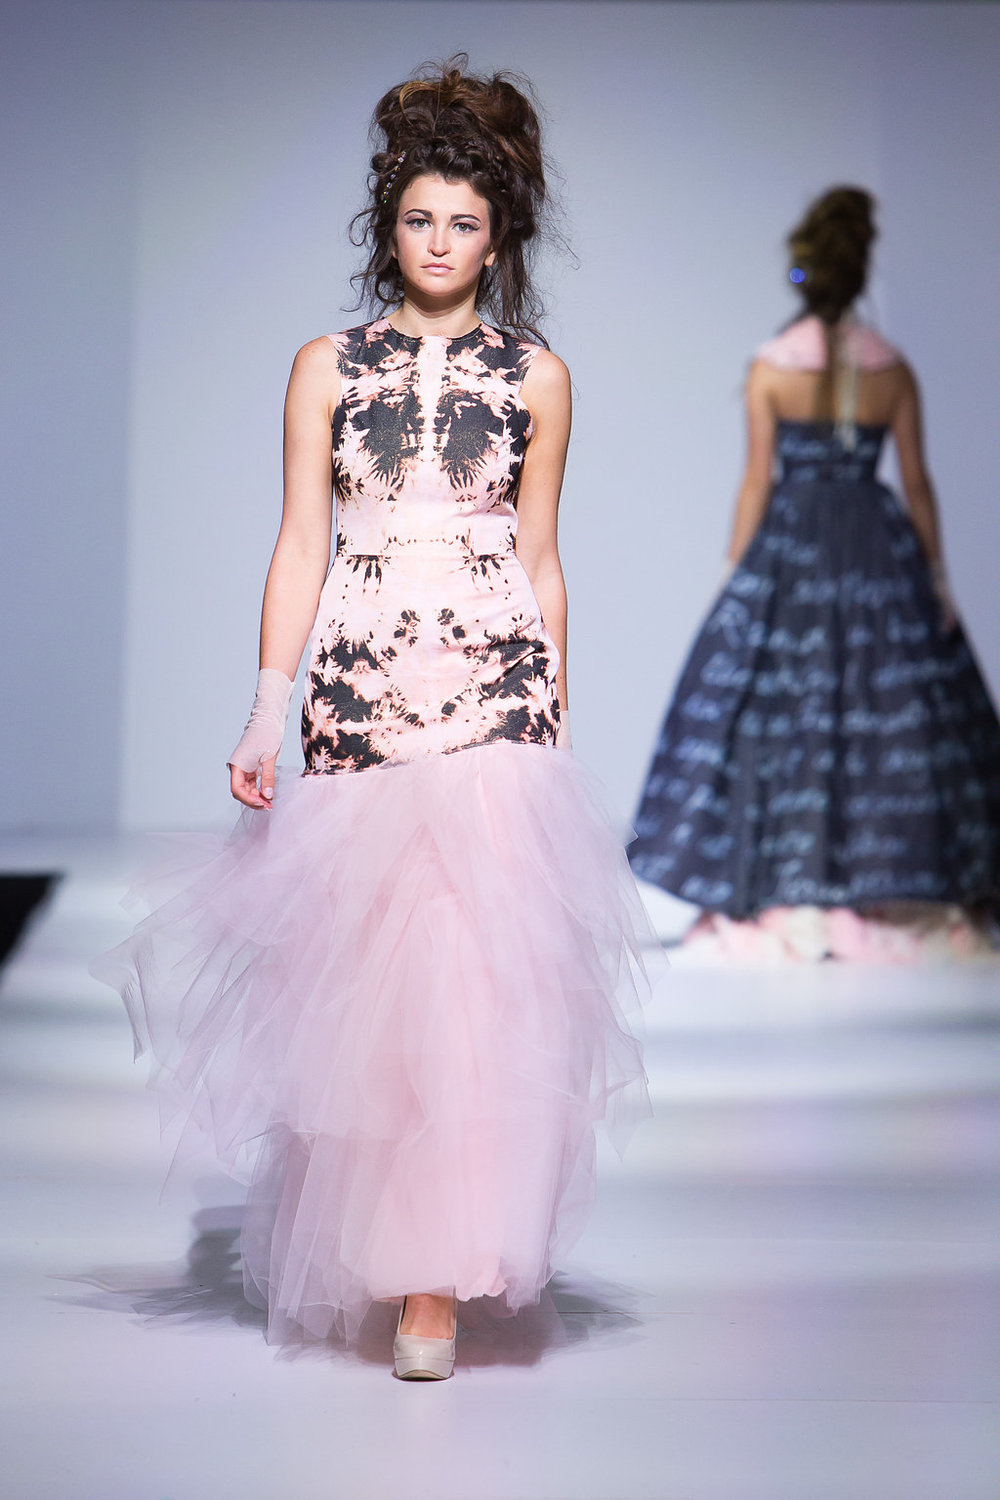 Black glitter denim, bleached and then overdyed pink, with blush pink tulle skirt